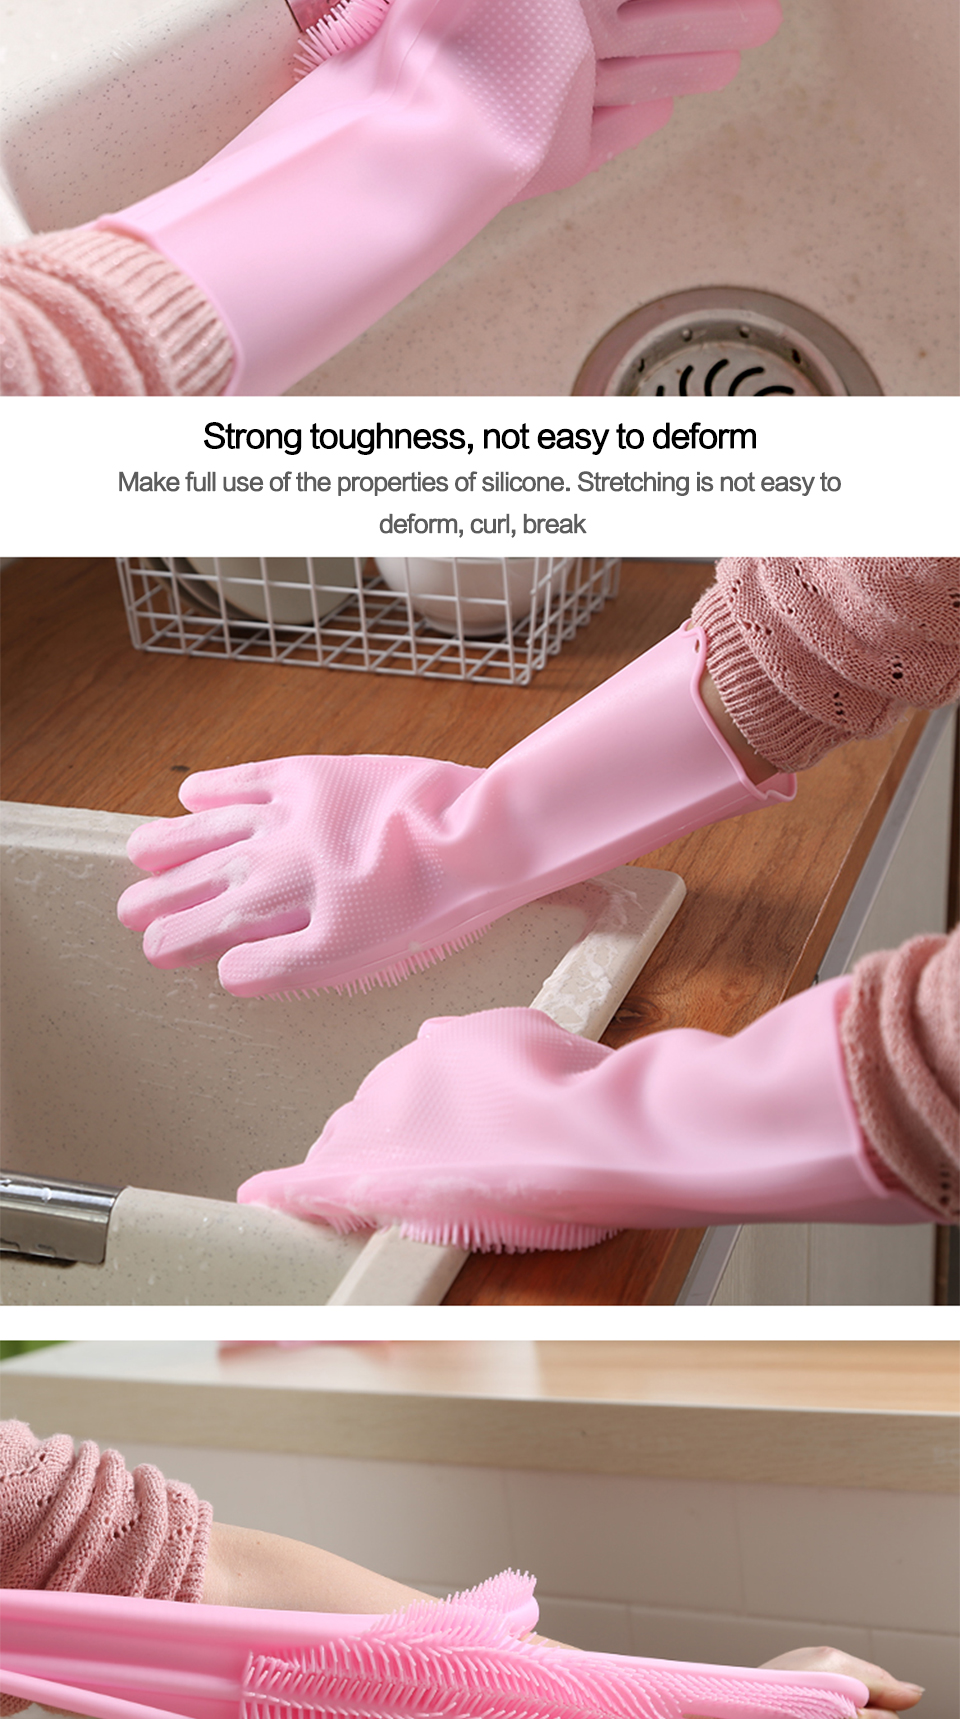 SILIKOLOVE Magic Silicone Dish washing Gloves kitchen accessories Dishwashing Glove Household Tools for Cleaning Car Pet Care Hair Grooming Brush_05